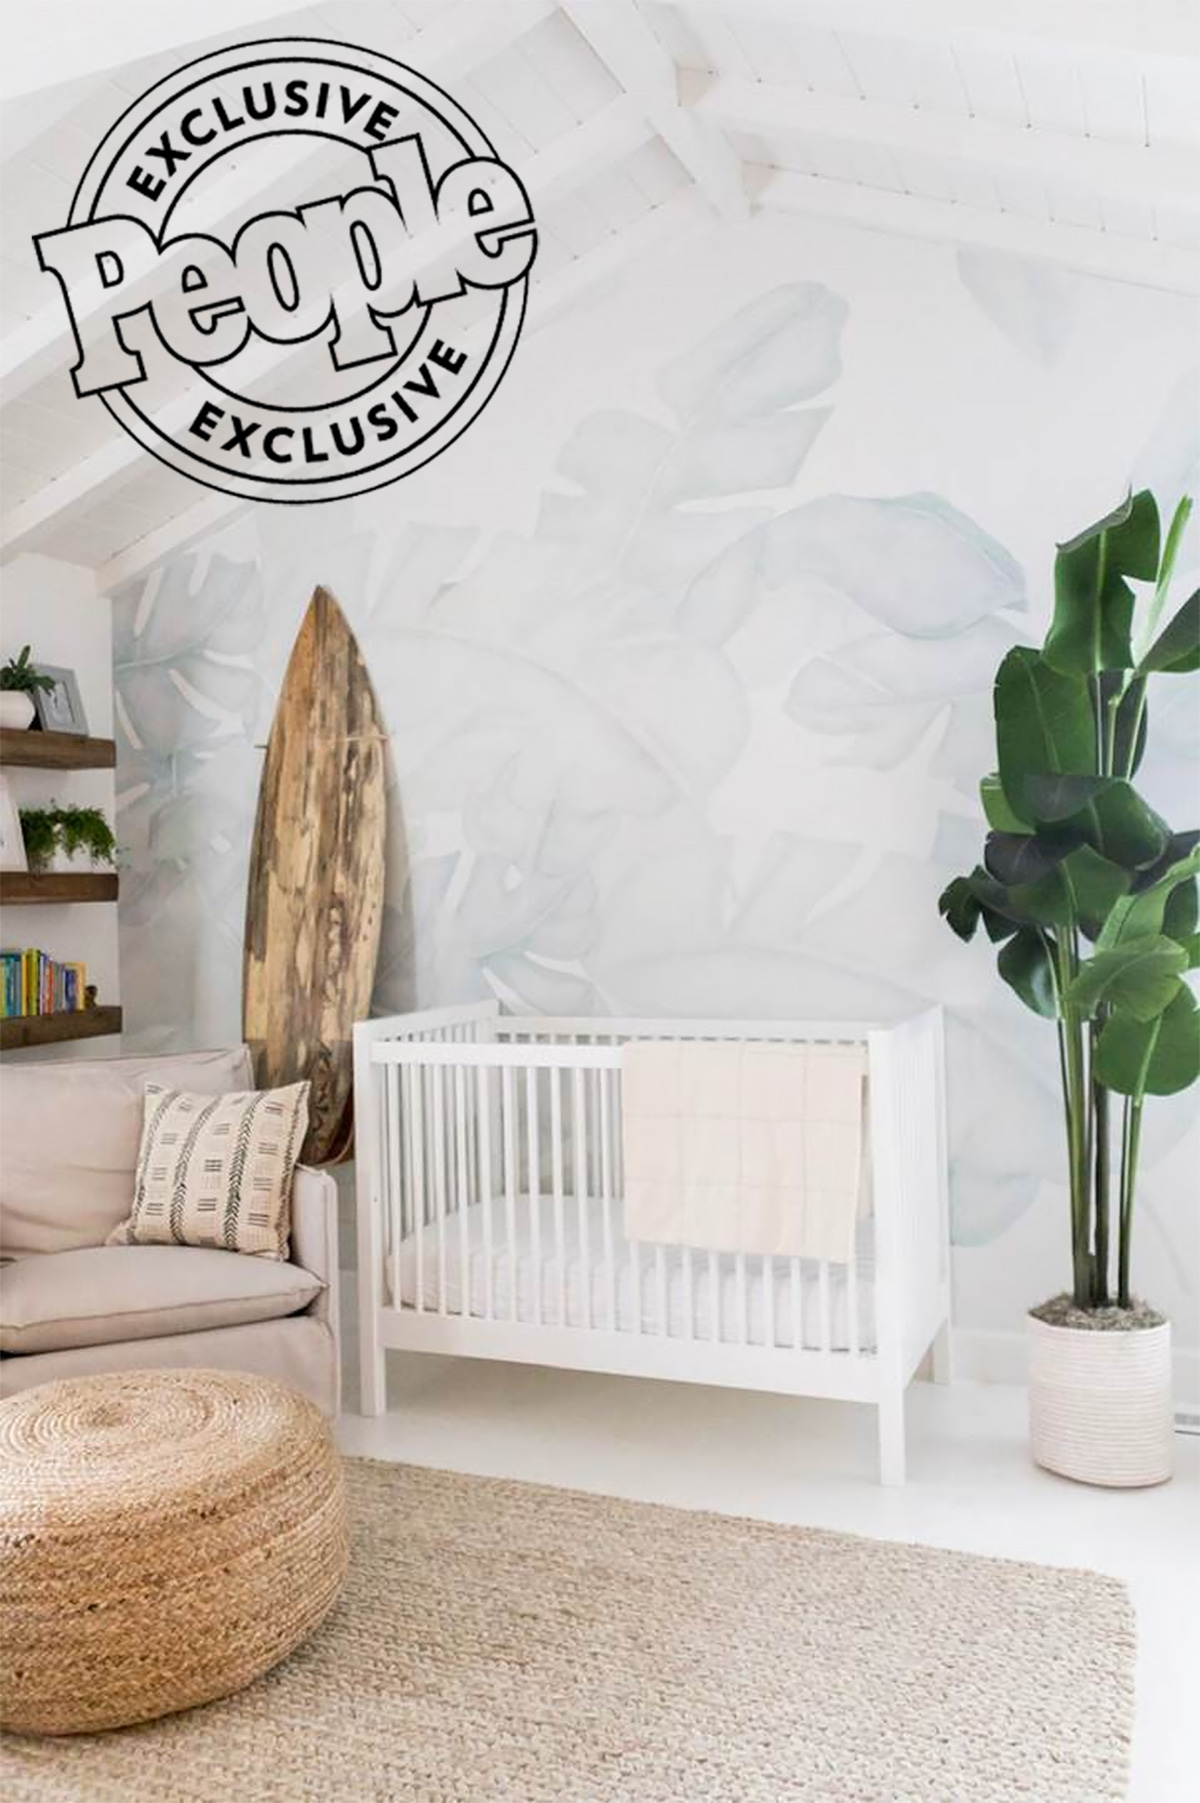 See Lauren Conrad's 'Calm' Nursery for Newborn Son Charlie, Complete with Décor by The Little Market